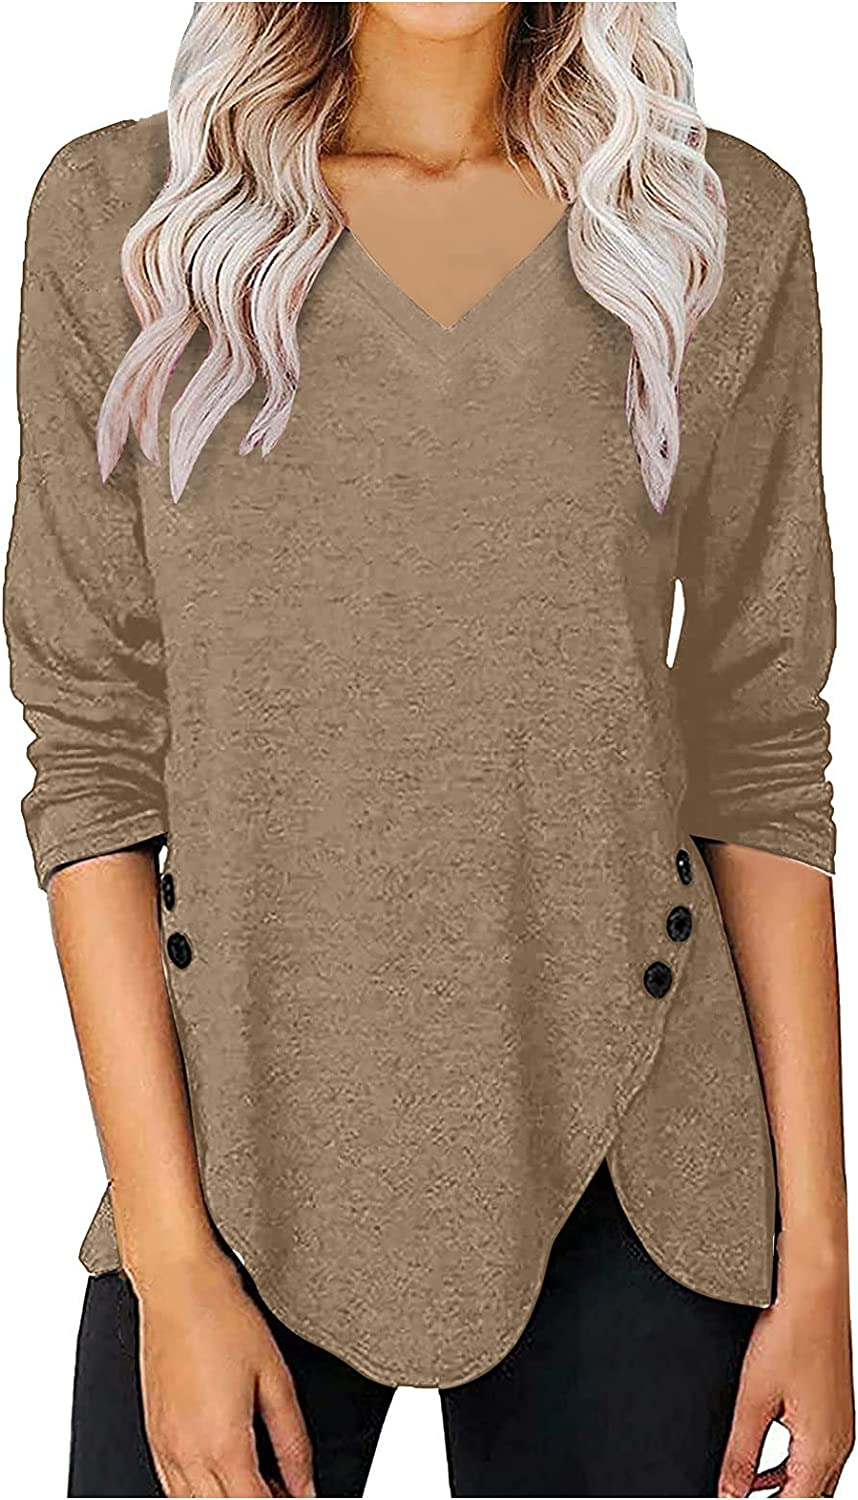 Womens Tops At the price of surprise Ranking TOP3 and Blouses Long Sleeve Neck Solid Color V Long-Sle